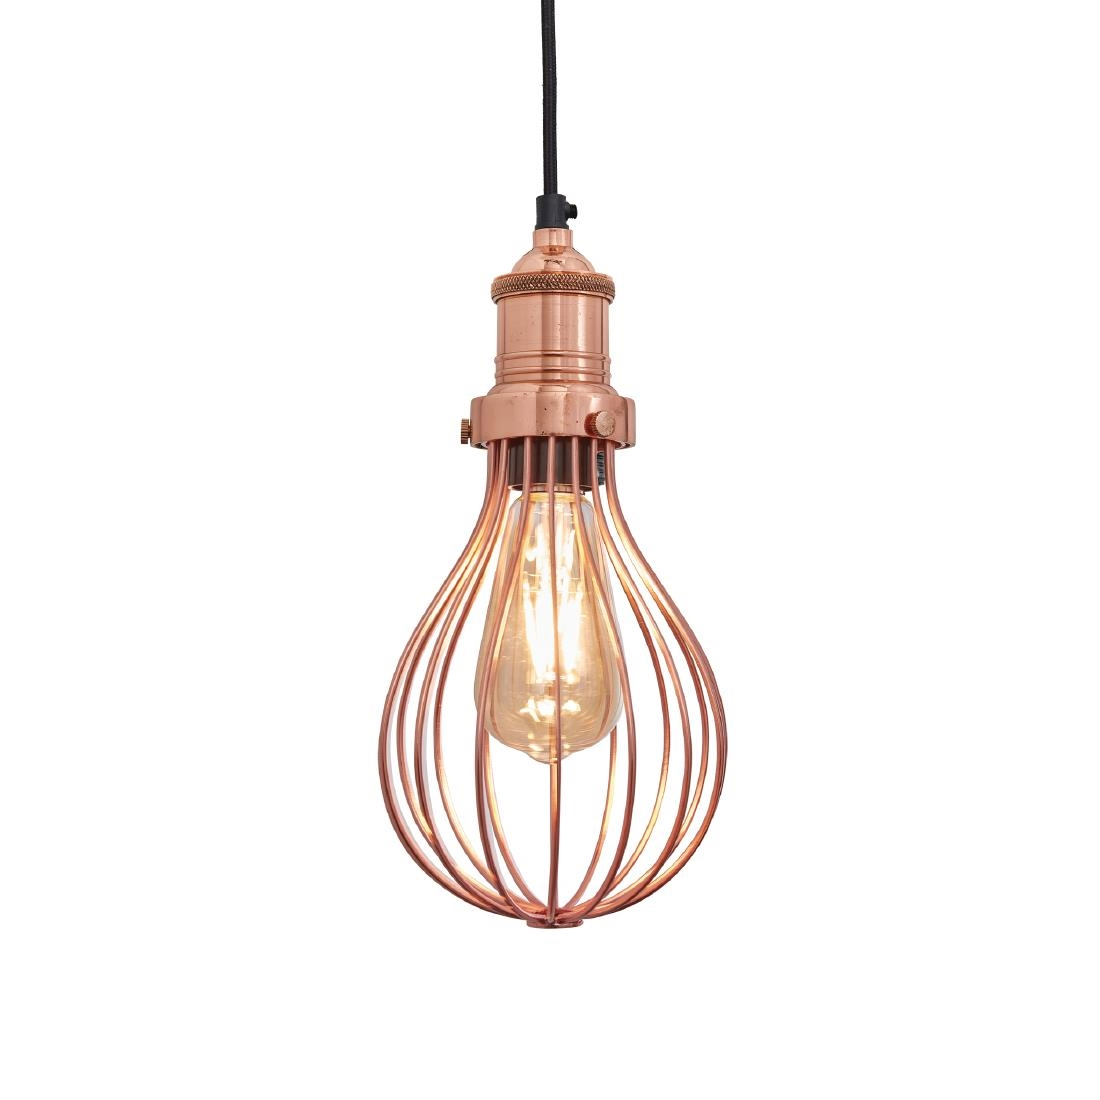 Image of Industville Brooklyn Balloon Cage Pendant Copper 155mm